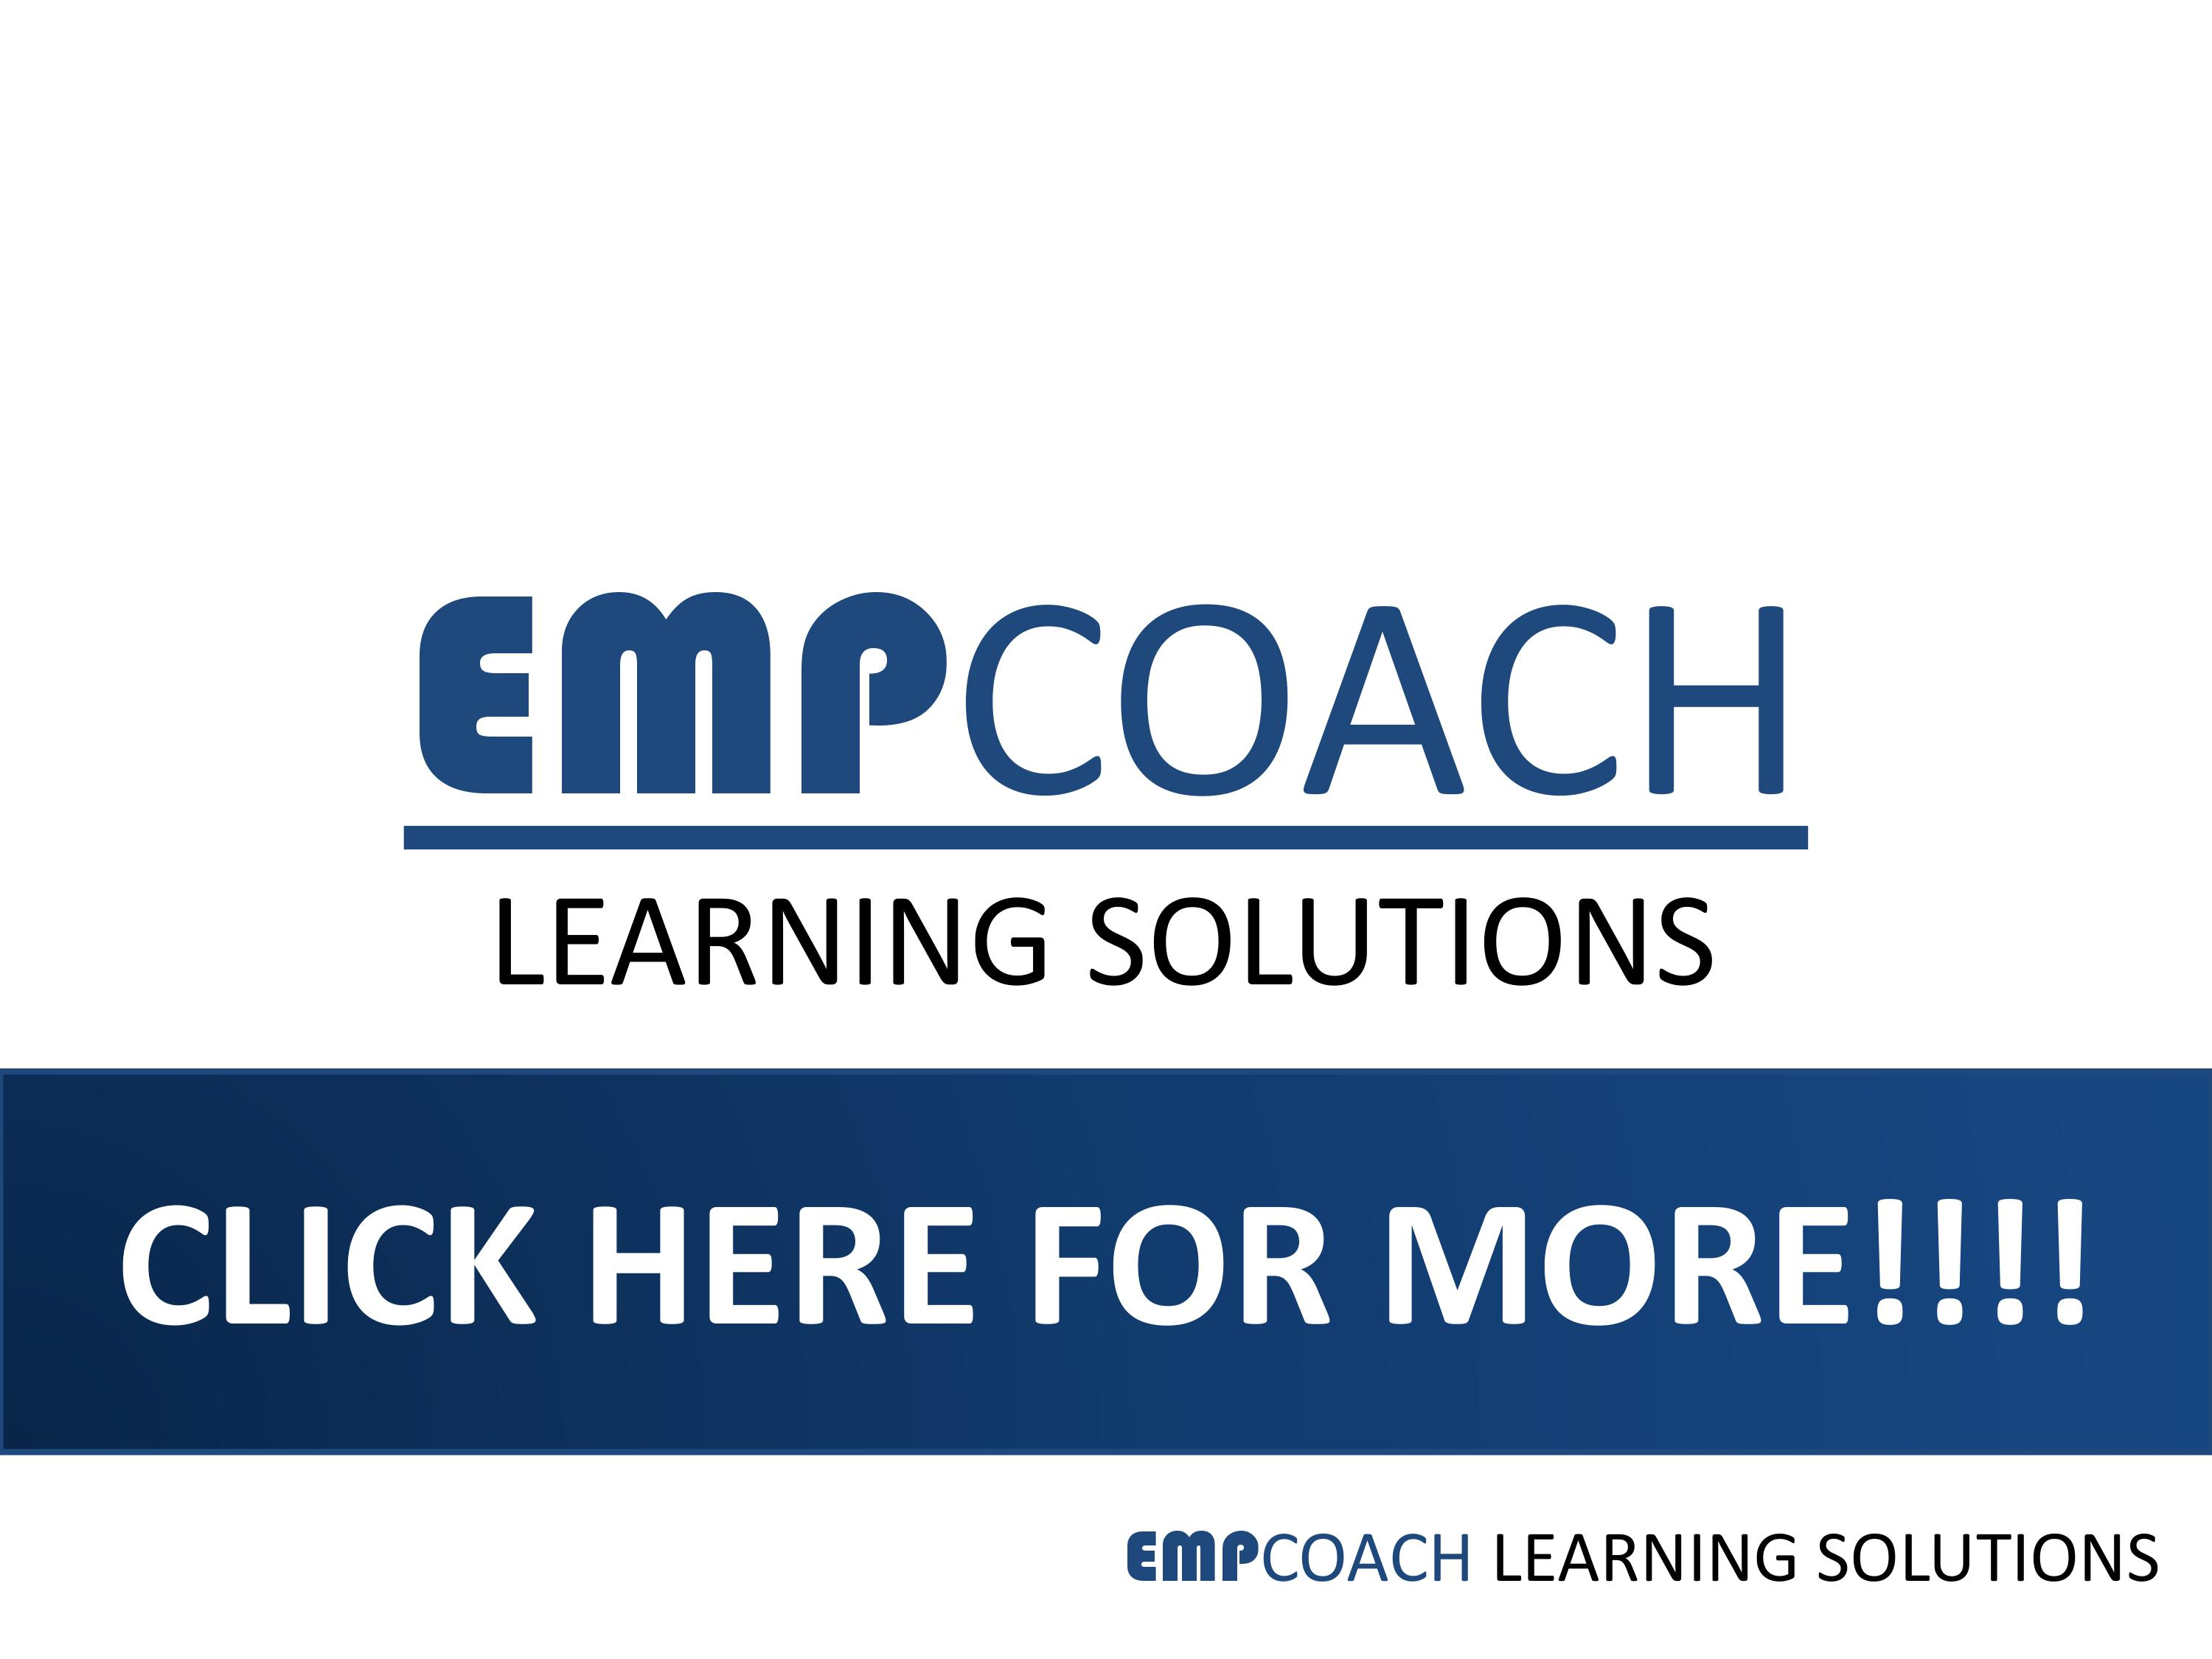 EMPCOACH LEARNING SOLUTIONS